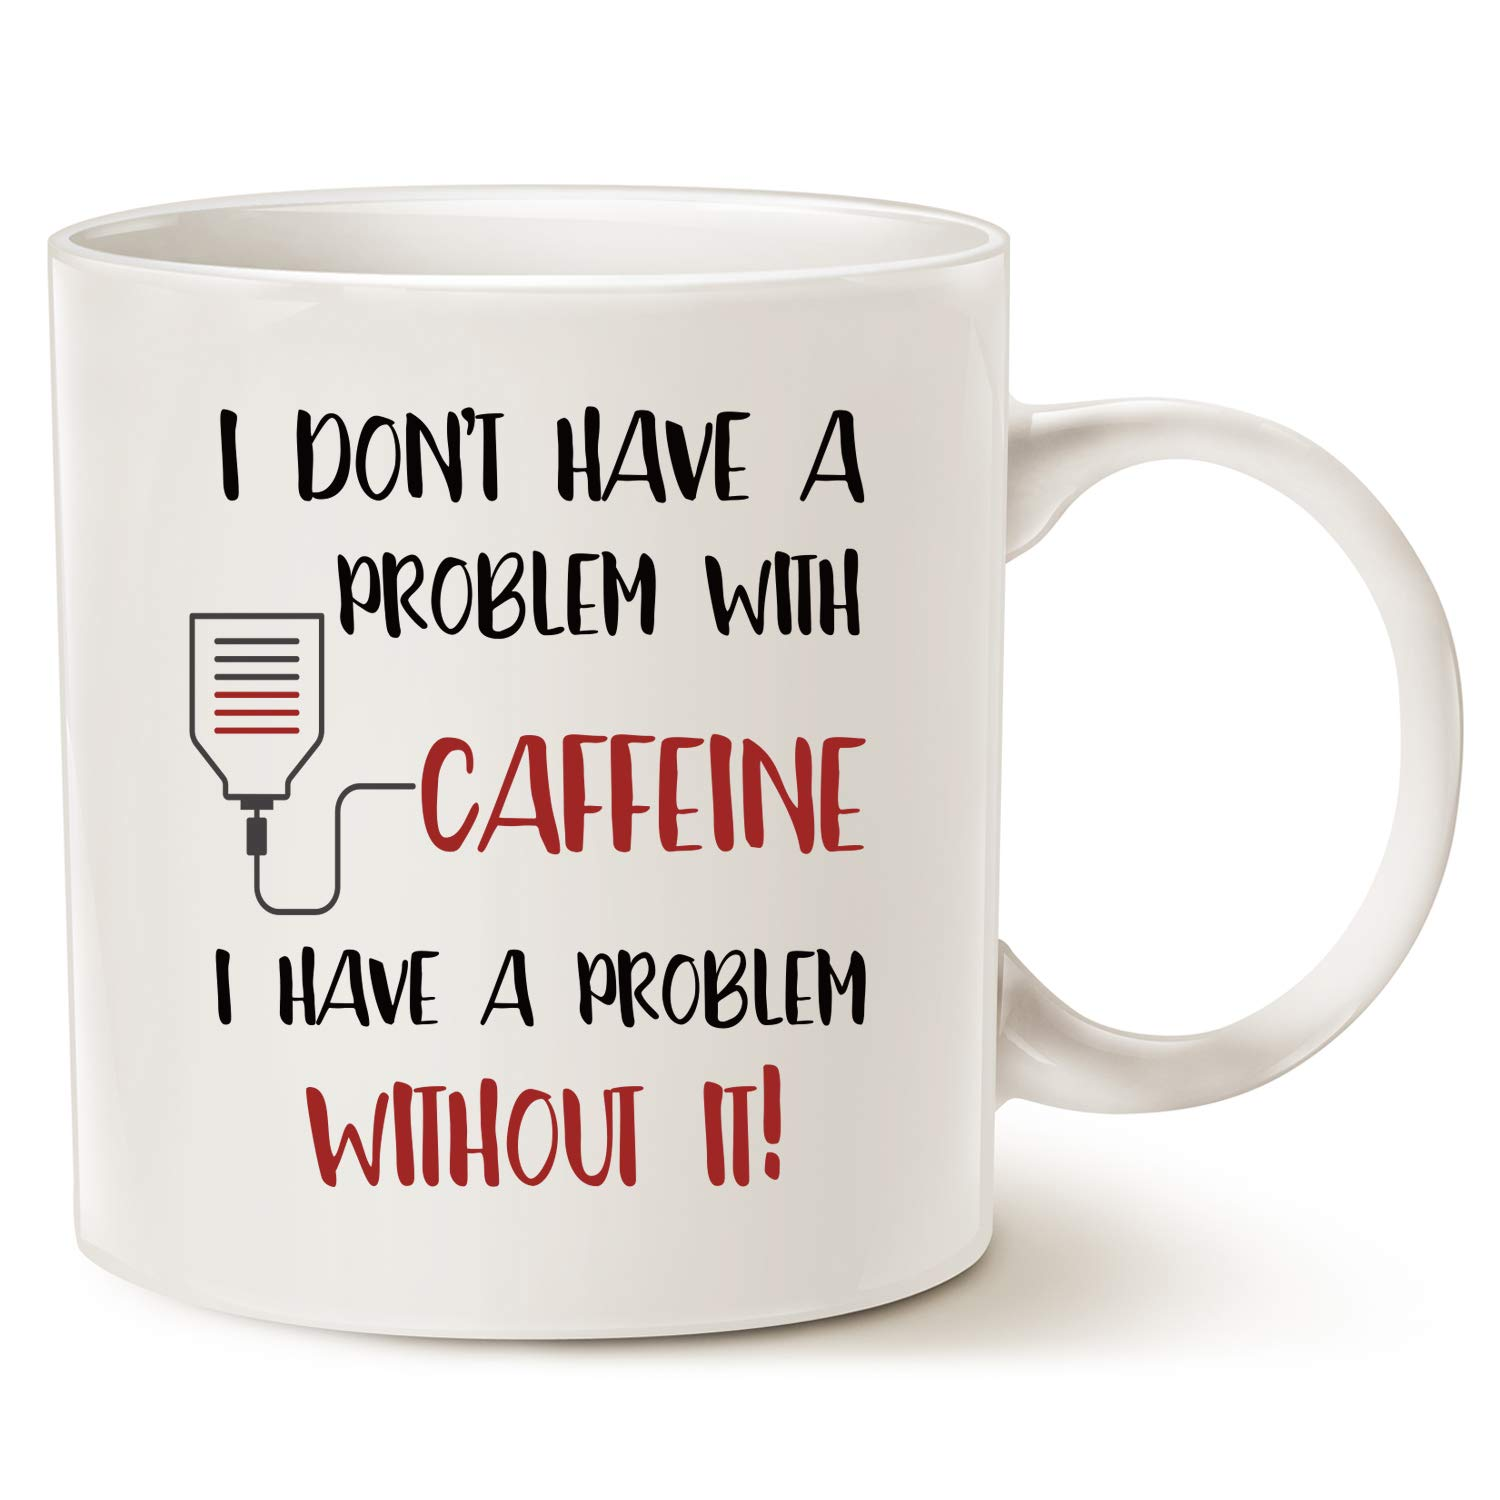 I don't have a problem with caffeine, I have a problem without it! - Coffee Lover Cup in White, 14 Oz